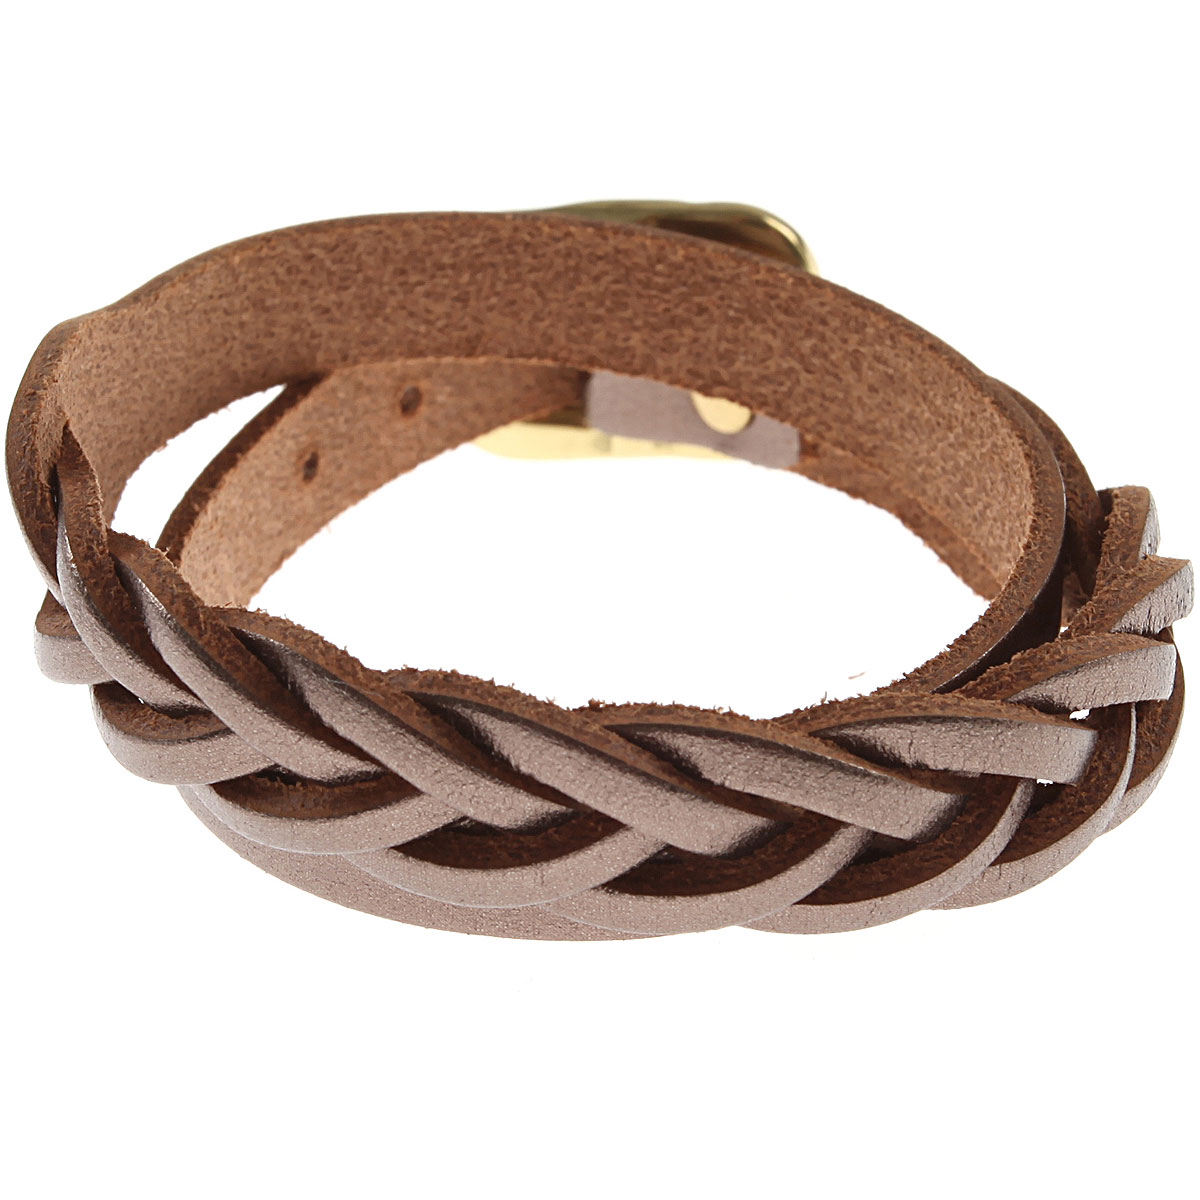 Image of Il Bisonte Bracelet for Women, Bronze, Leather, 2017